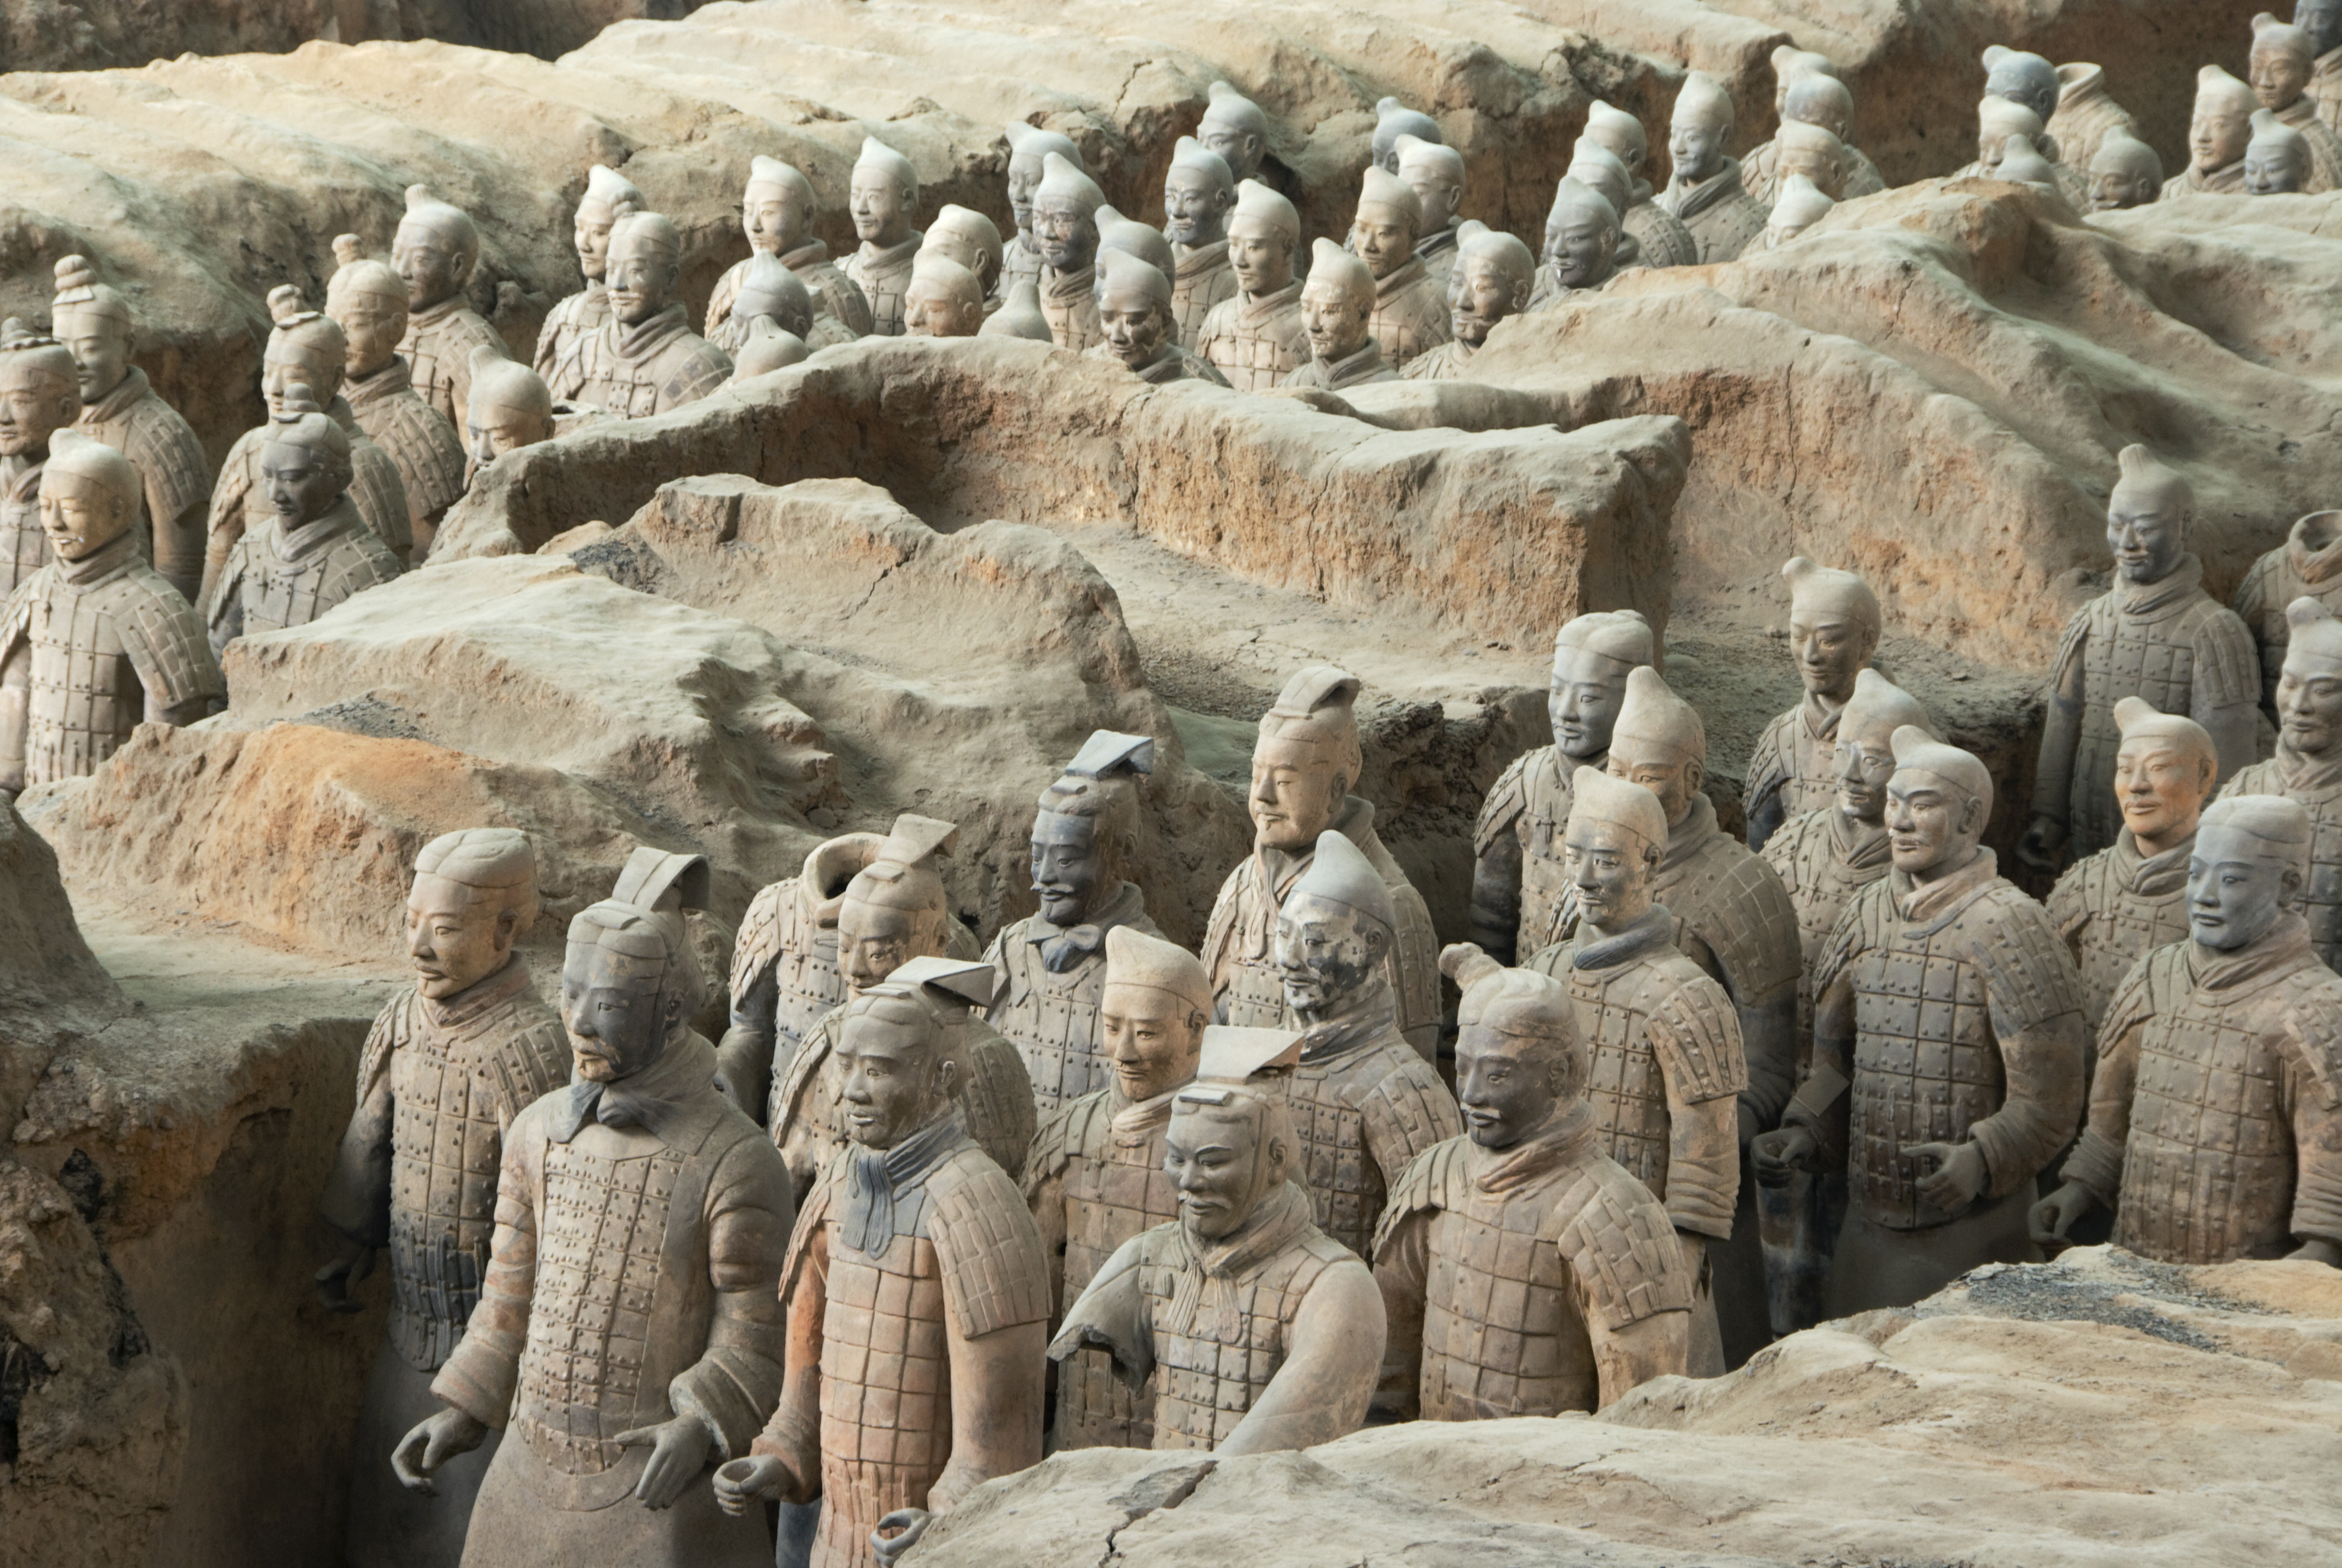 terra cotta soldiers of the qin